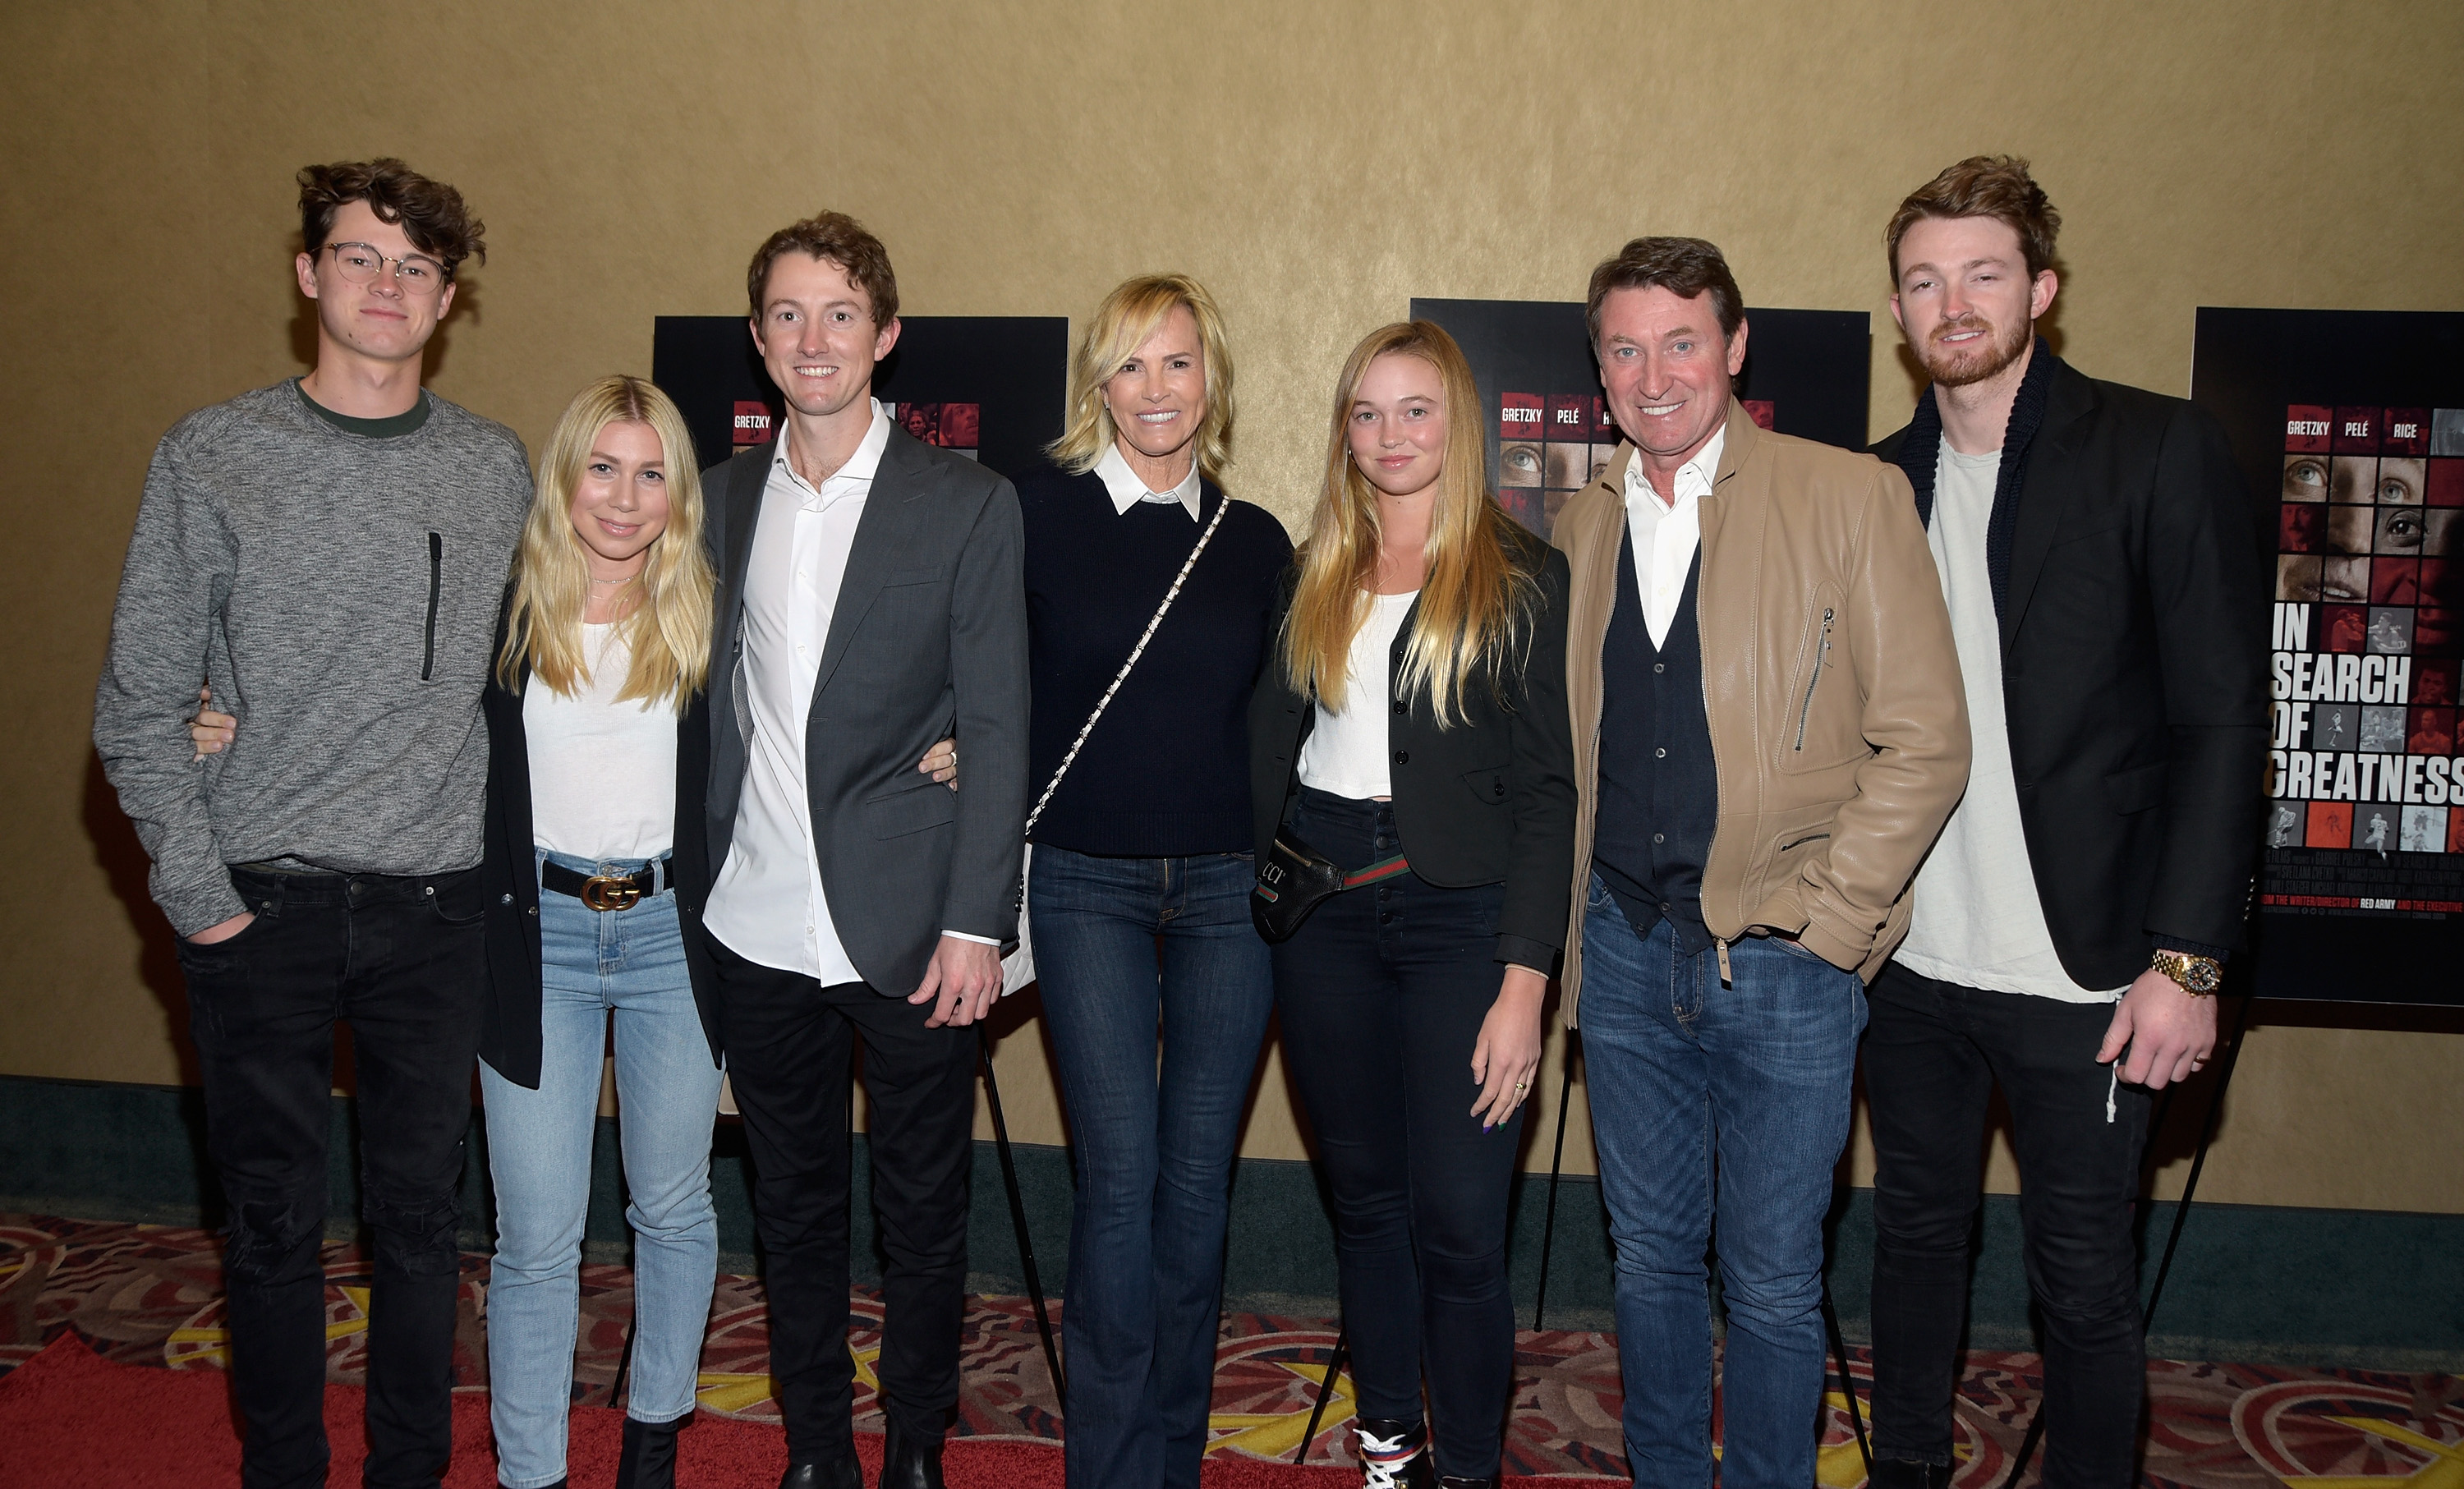 """CENTURY CITY, CA - NOVEMBER 01: (L - R) Tristan Gretsky, guest, Ty Gretzky, actress Janet Jones, Emma Gretzky, NHL legend Wayne Gretzky and Trevor Gretzky attend the Los Angeles premiere of """"In Search Of Greatness"""" released by IMG Films, AOS Art Of Sport and Moviepass Films at AMC Century City 15 theater on November 1, 2018 in Century City, California. (Photo by Michael Tullberg/Getty Images)"""